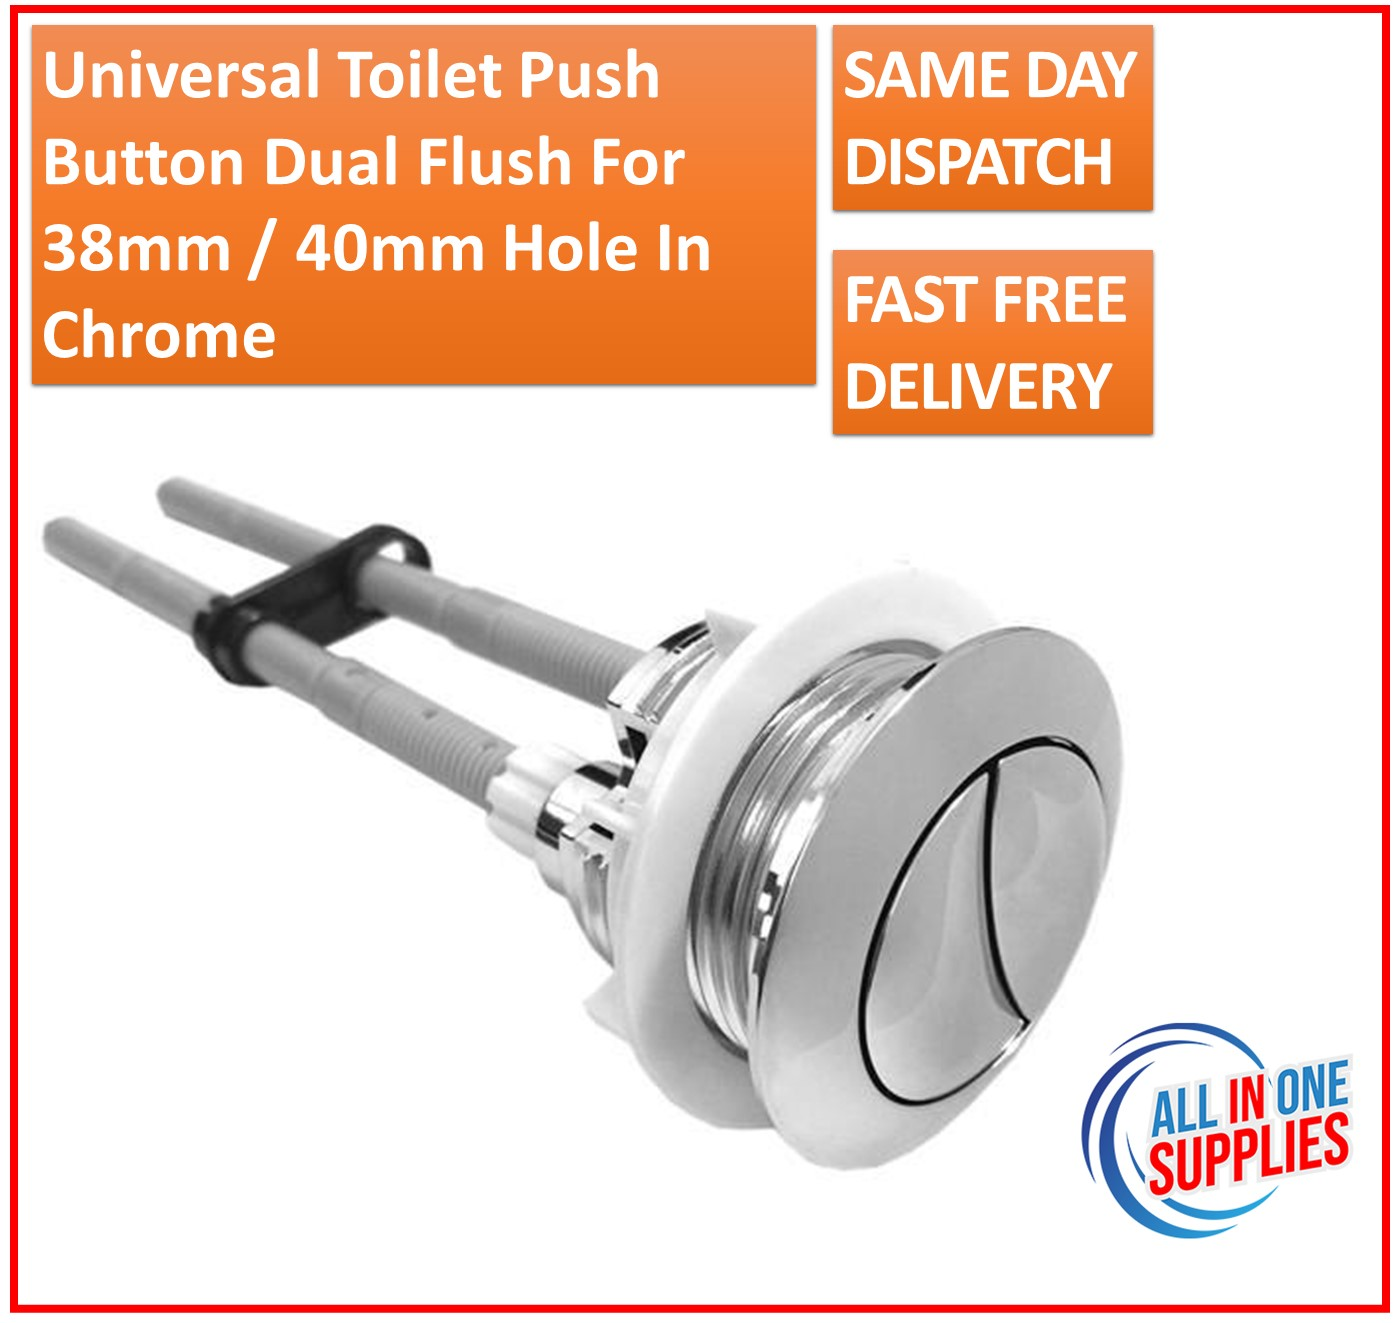 Universal Type Toilet Push Button Dual Flush for 38mm 40mm Hole in Chrome